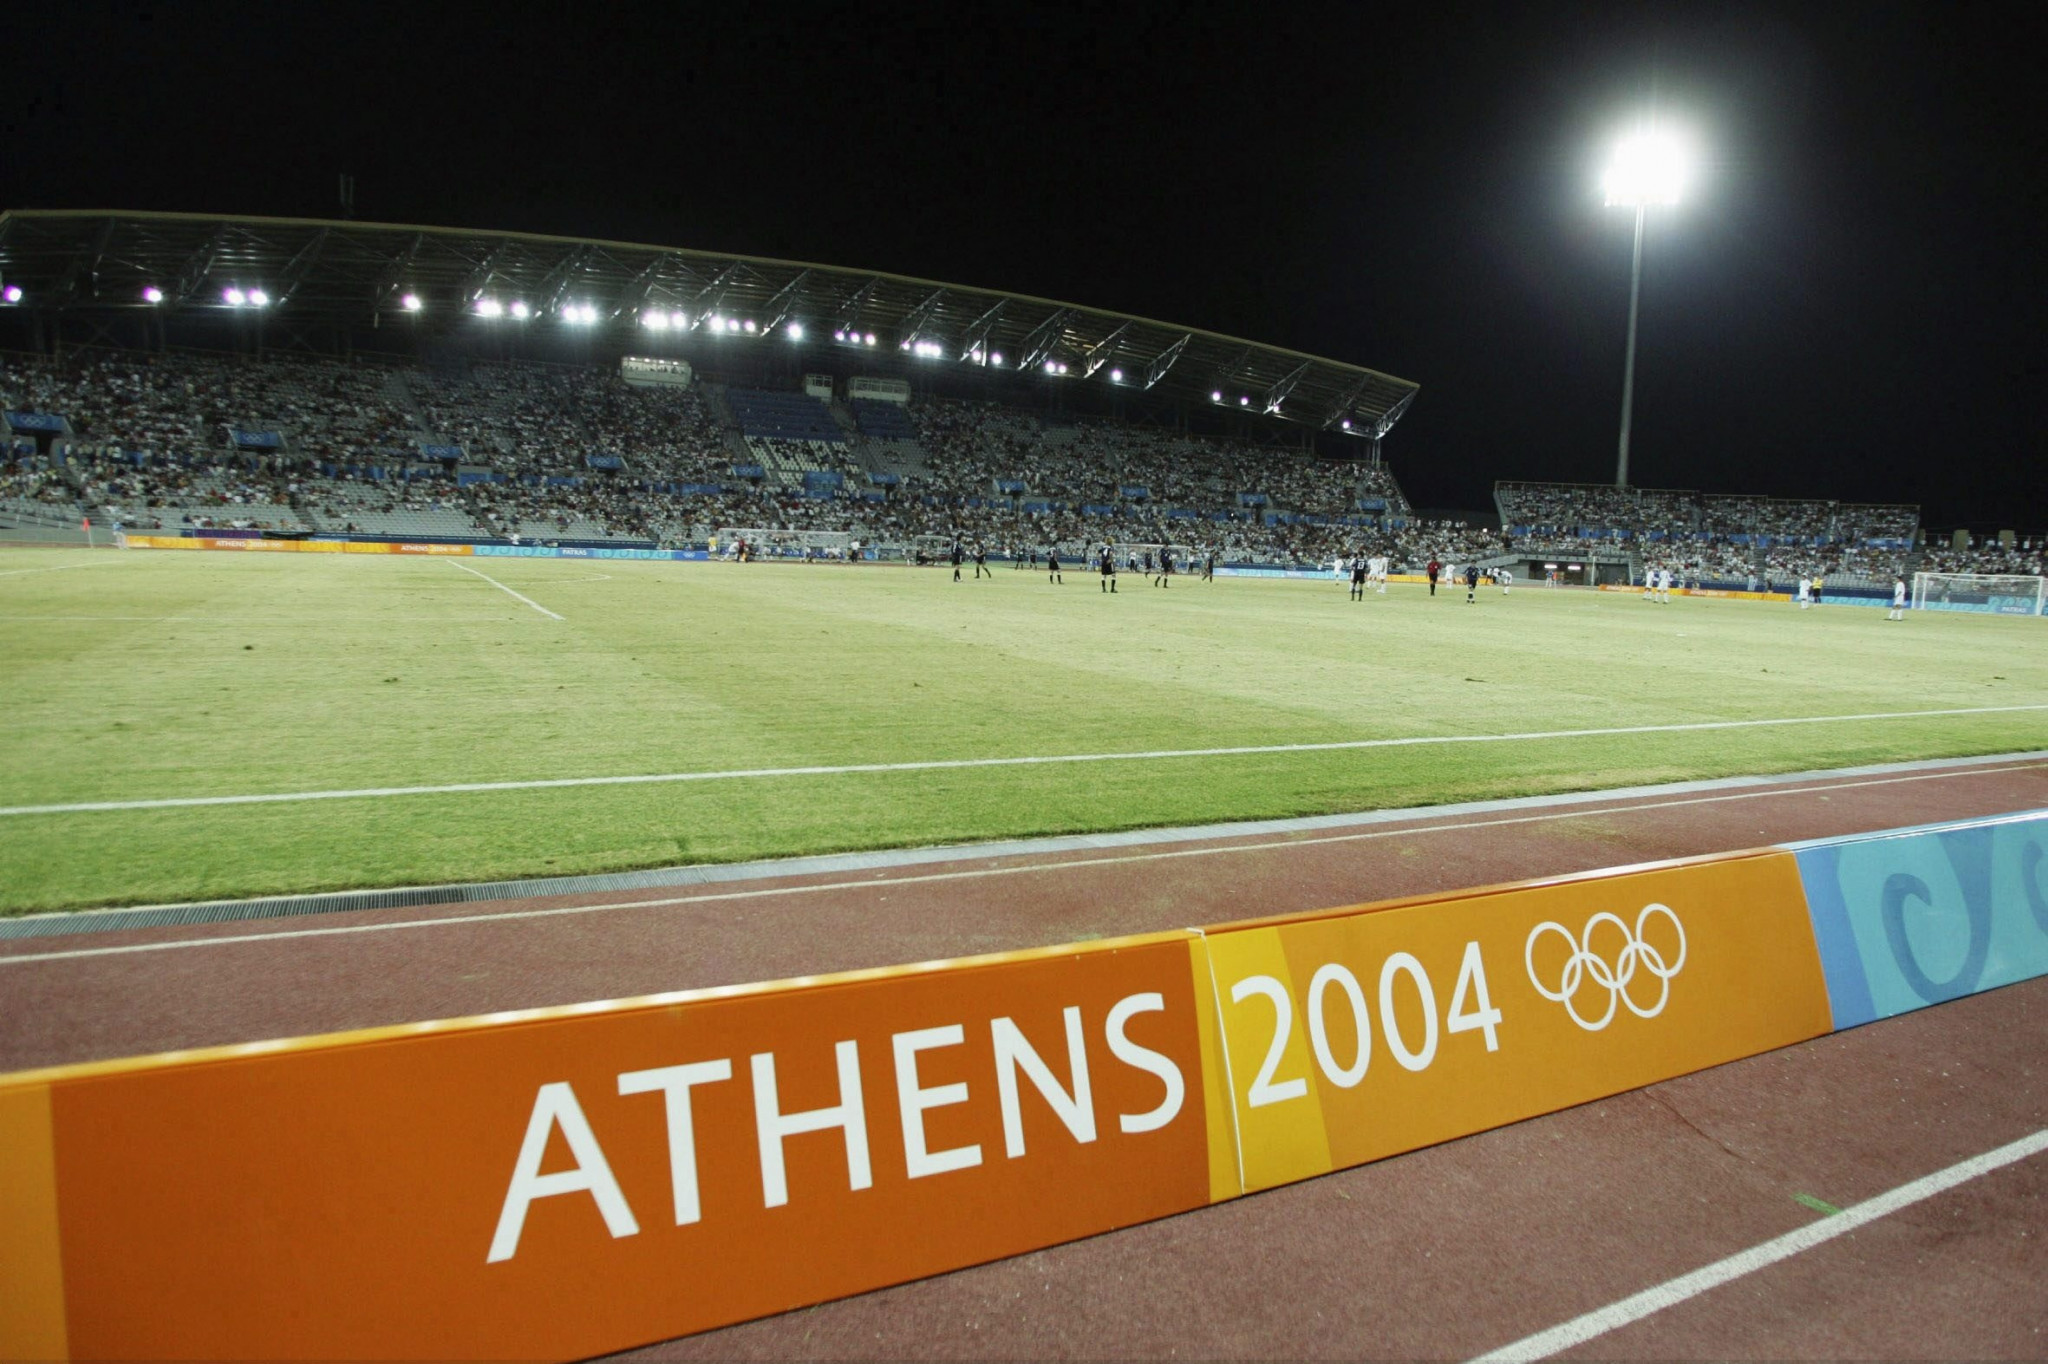 Athens 2004 helped to transform the Greek capital ©Getty Images